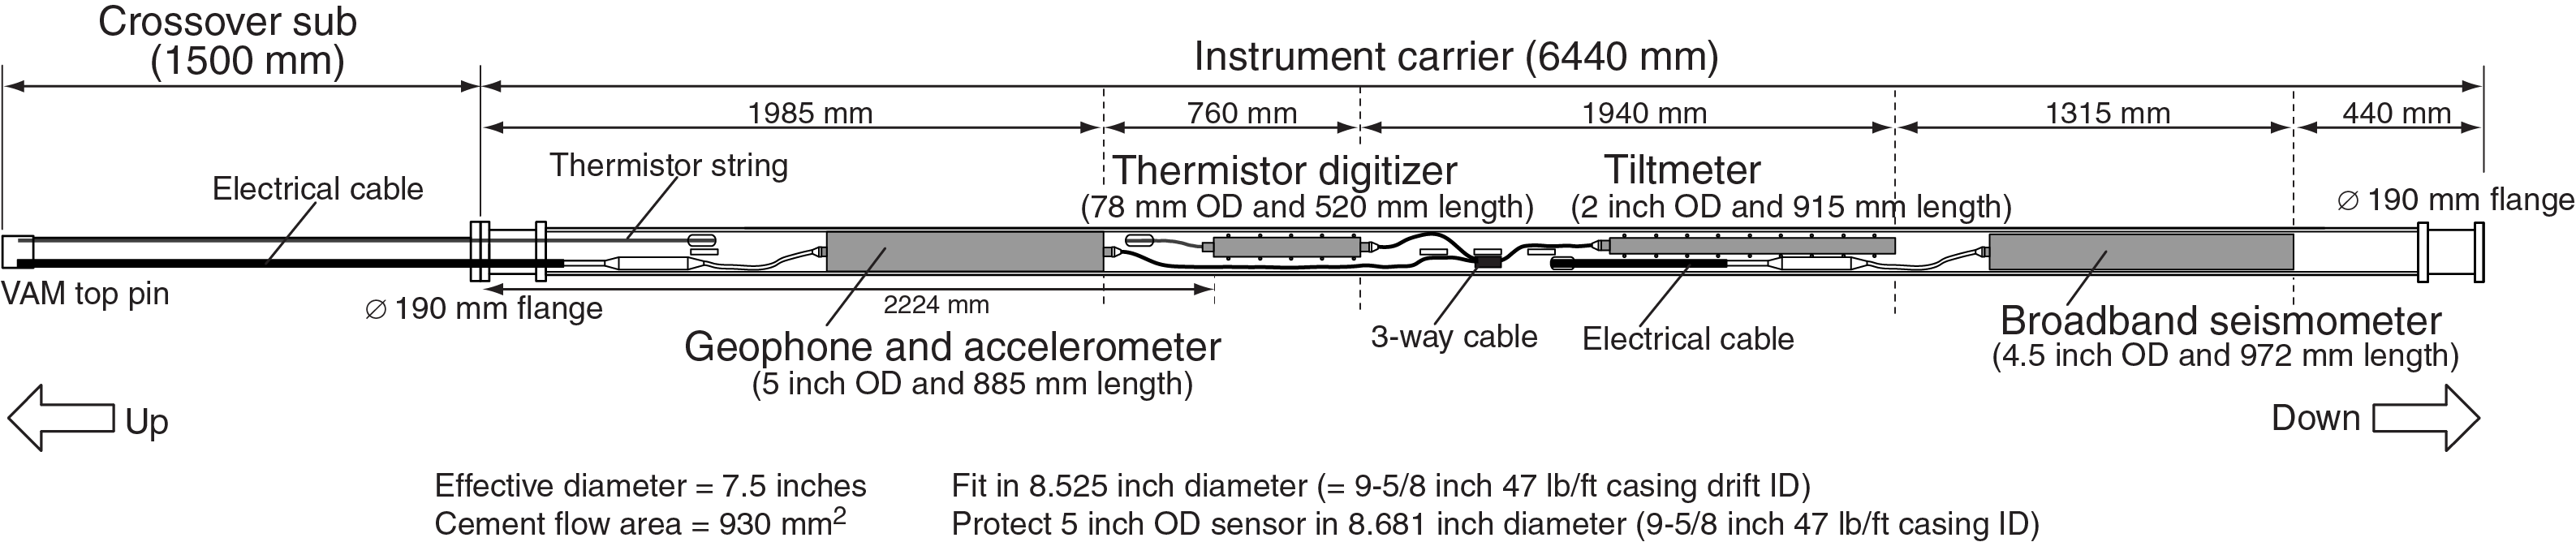 Iodp Publications Volume 365 Expedition Reports Camera Wiring Additionally Rear View Diagram Likewise Instrument Carrier Showing Locations And Connections